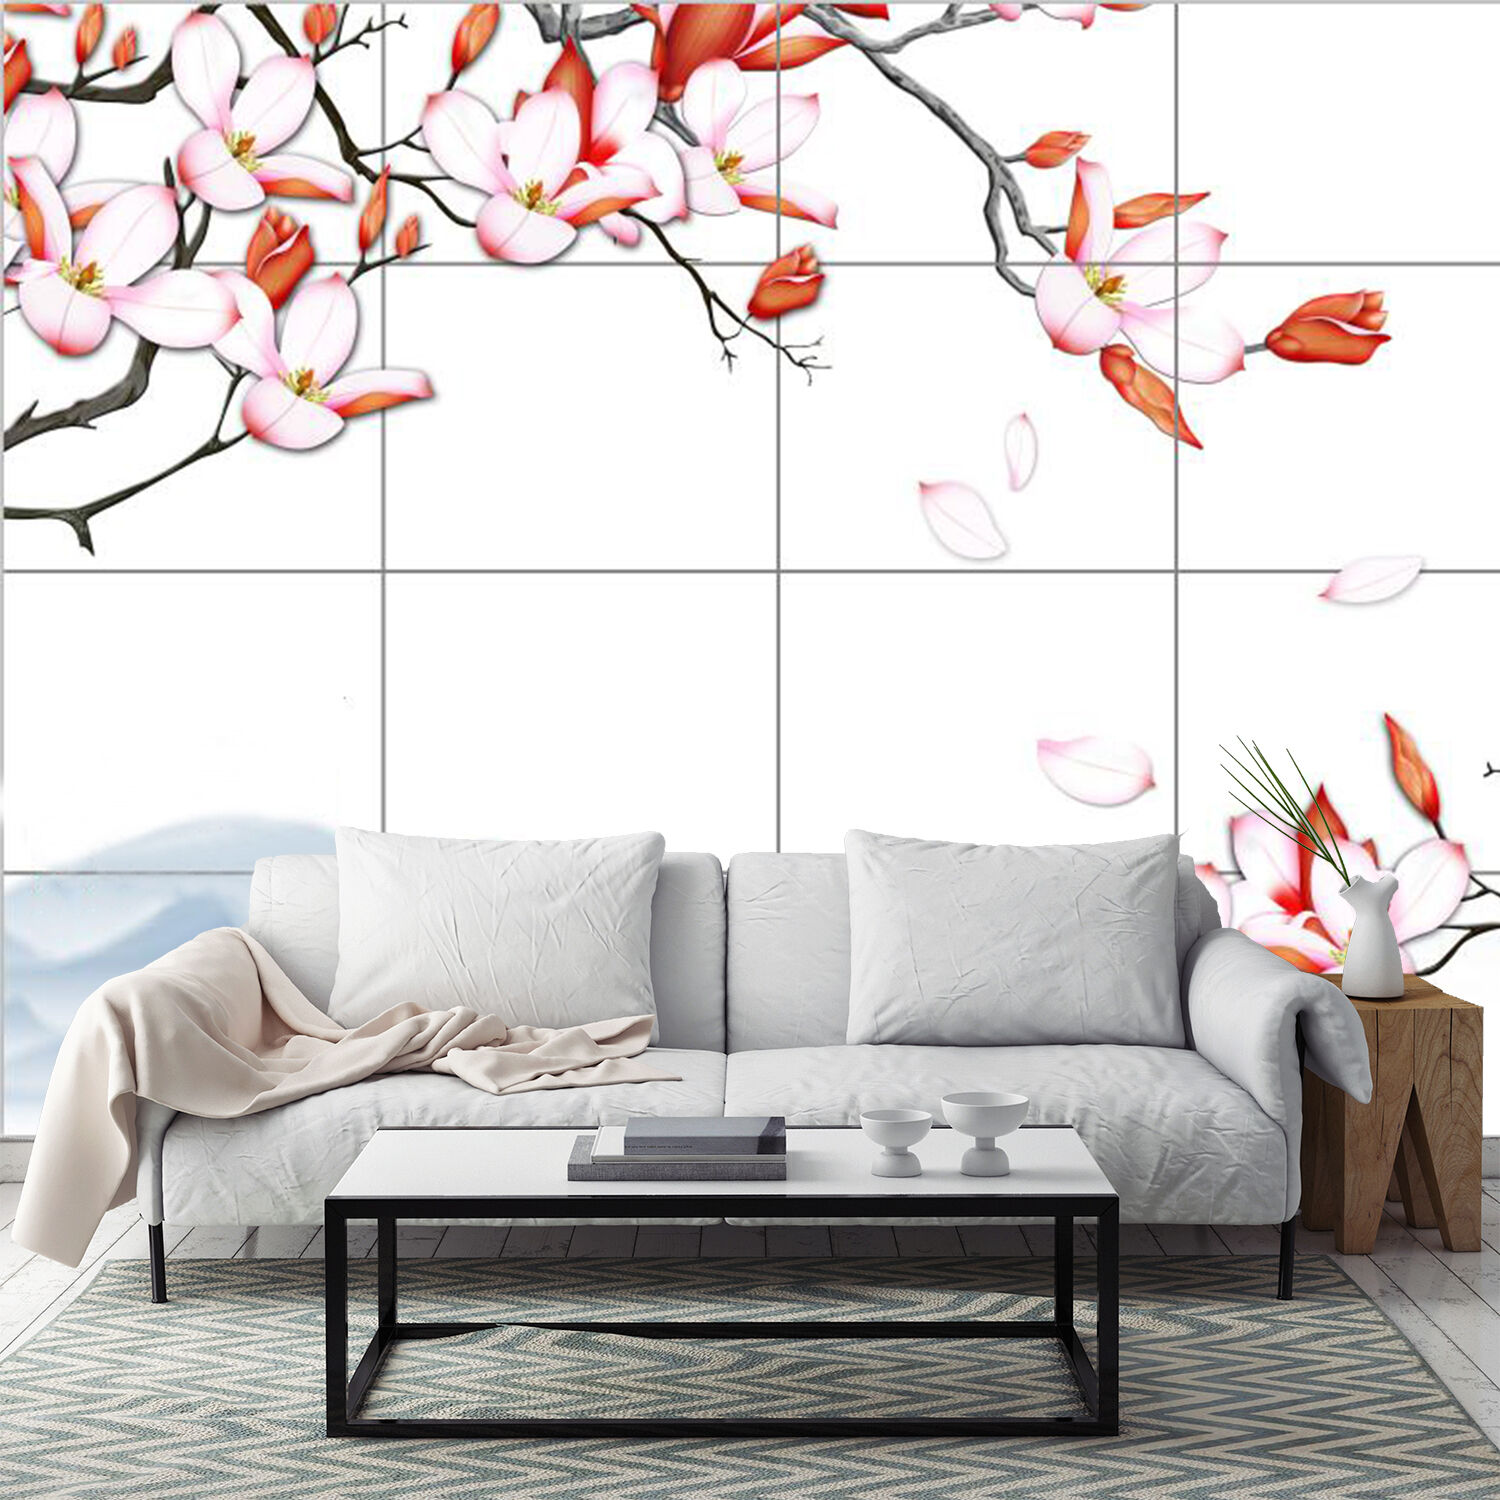 3D YPink spring flowers Wall Paper wall Print Decal Wall Deco Indoor wall Mural